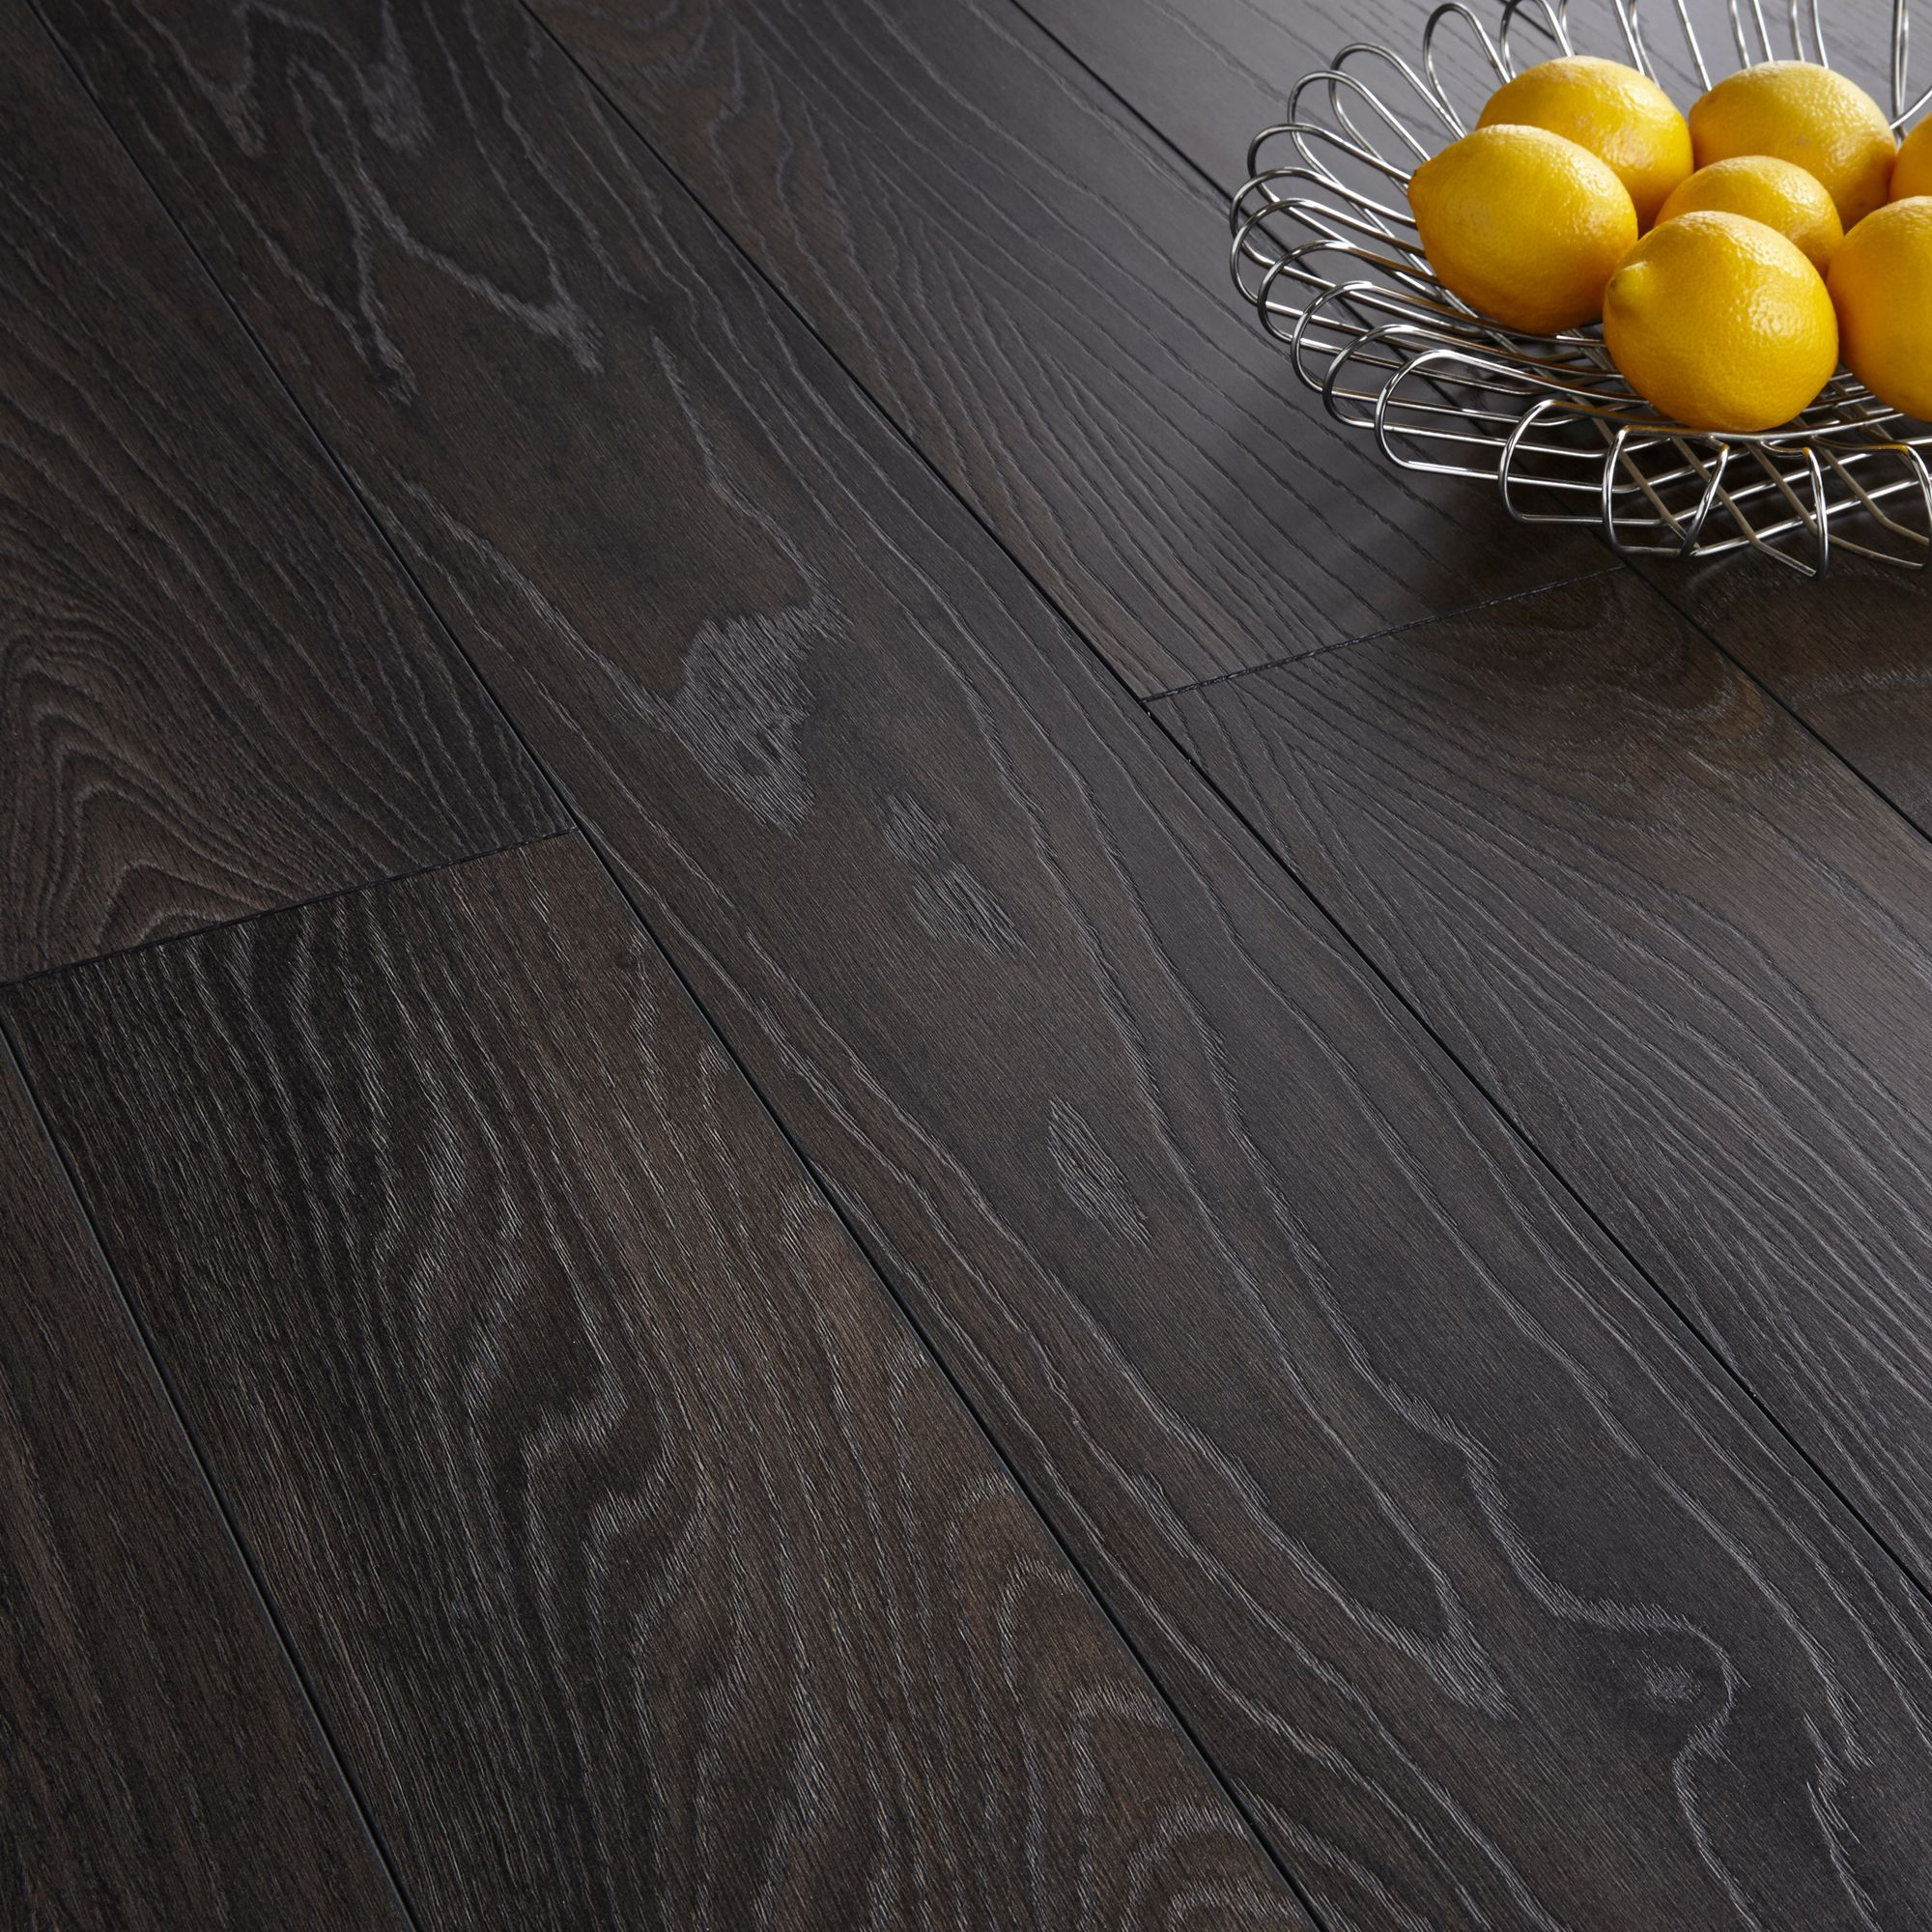 Toccata natural victoria oak effect laminate flooring 165 m pack toccata natural victoria oak effect laminate flooring 165 m pack departments tradepoint dailygadgetfo Gallery